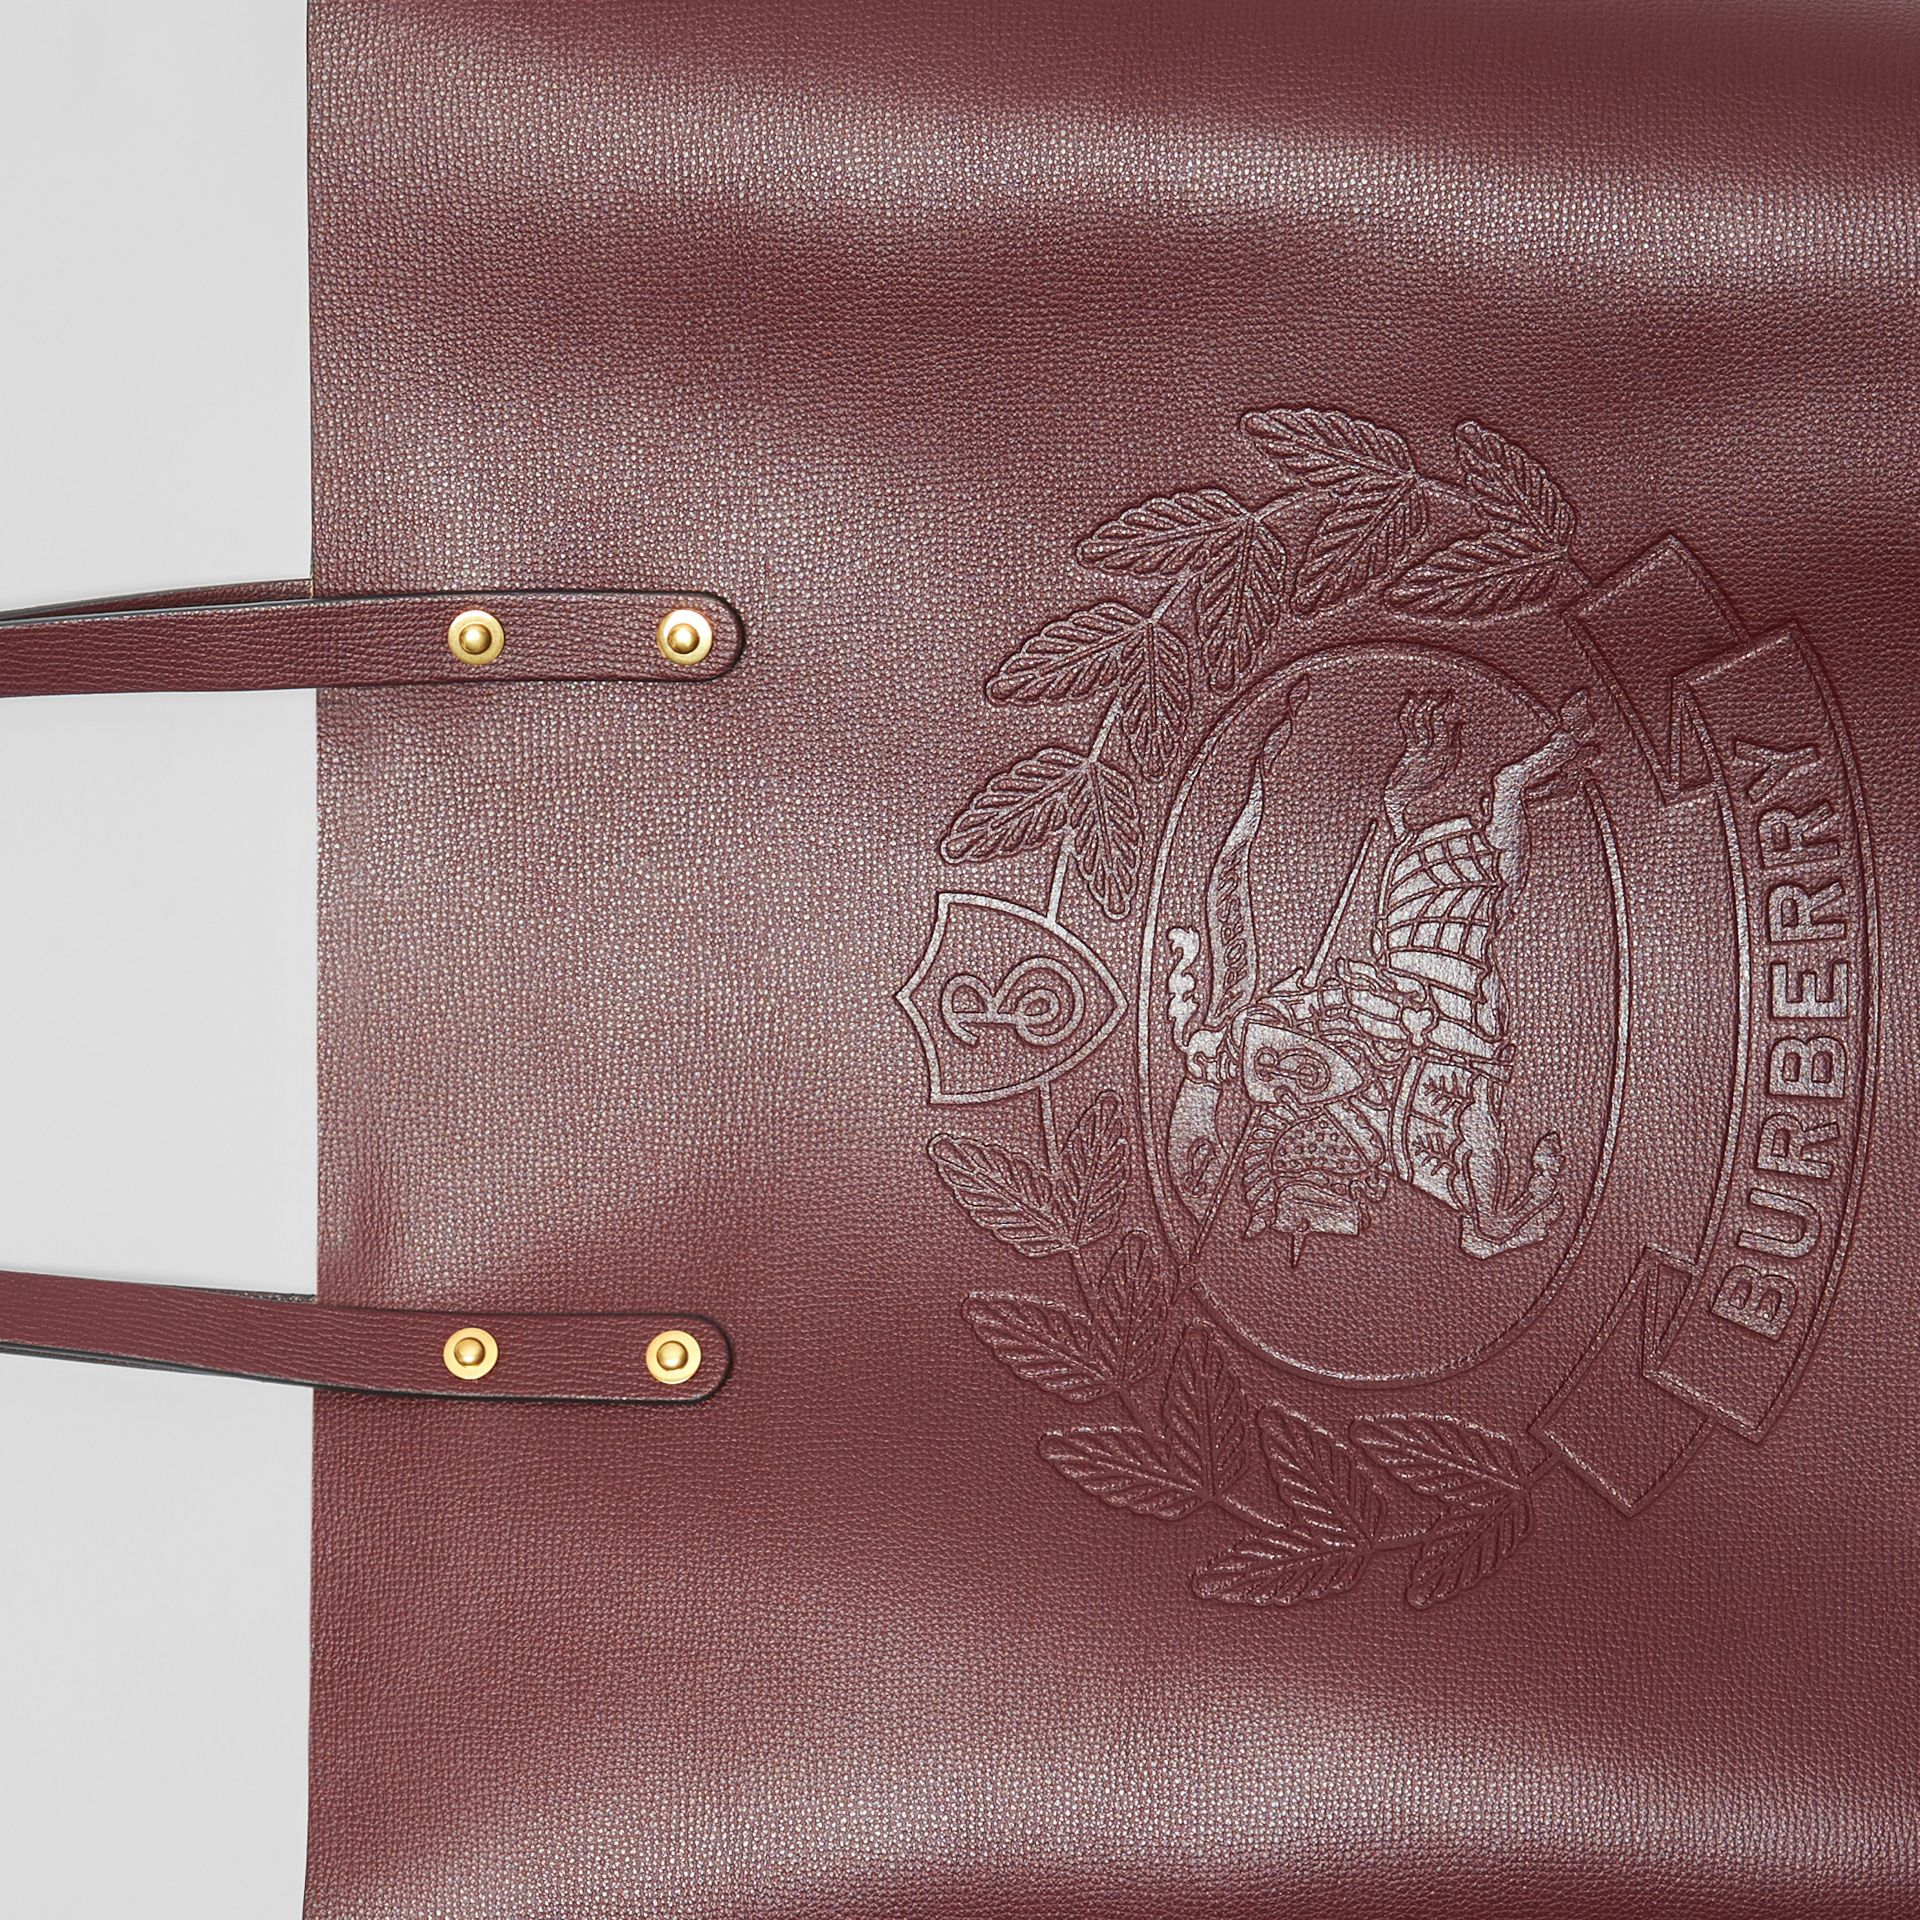 Embossed Crest Leather Tote in Burgundy | Burberry - gallery image 1